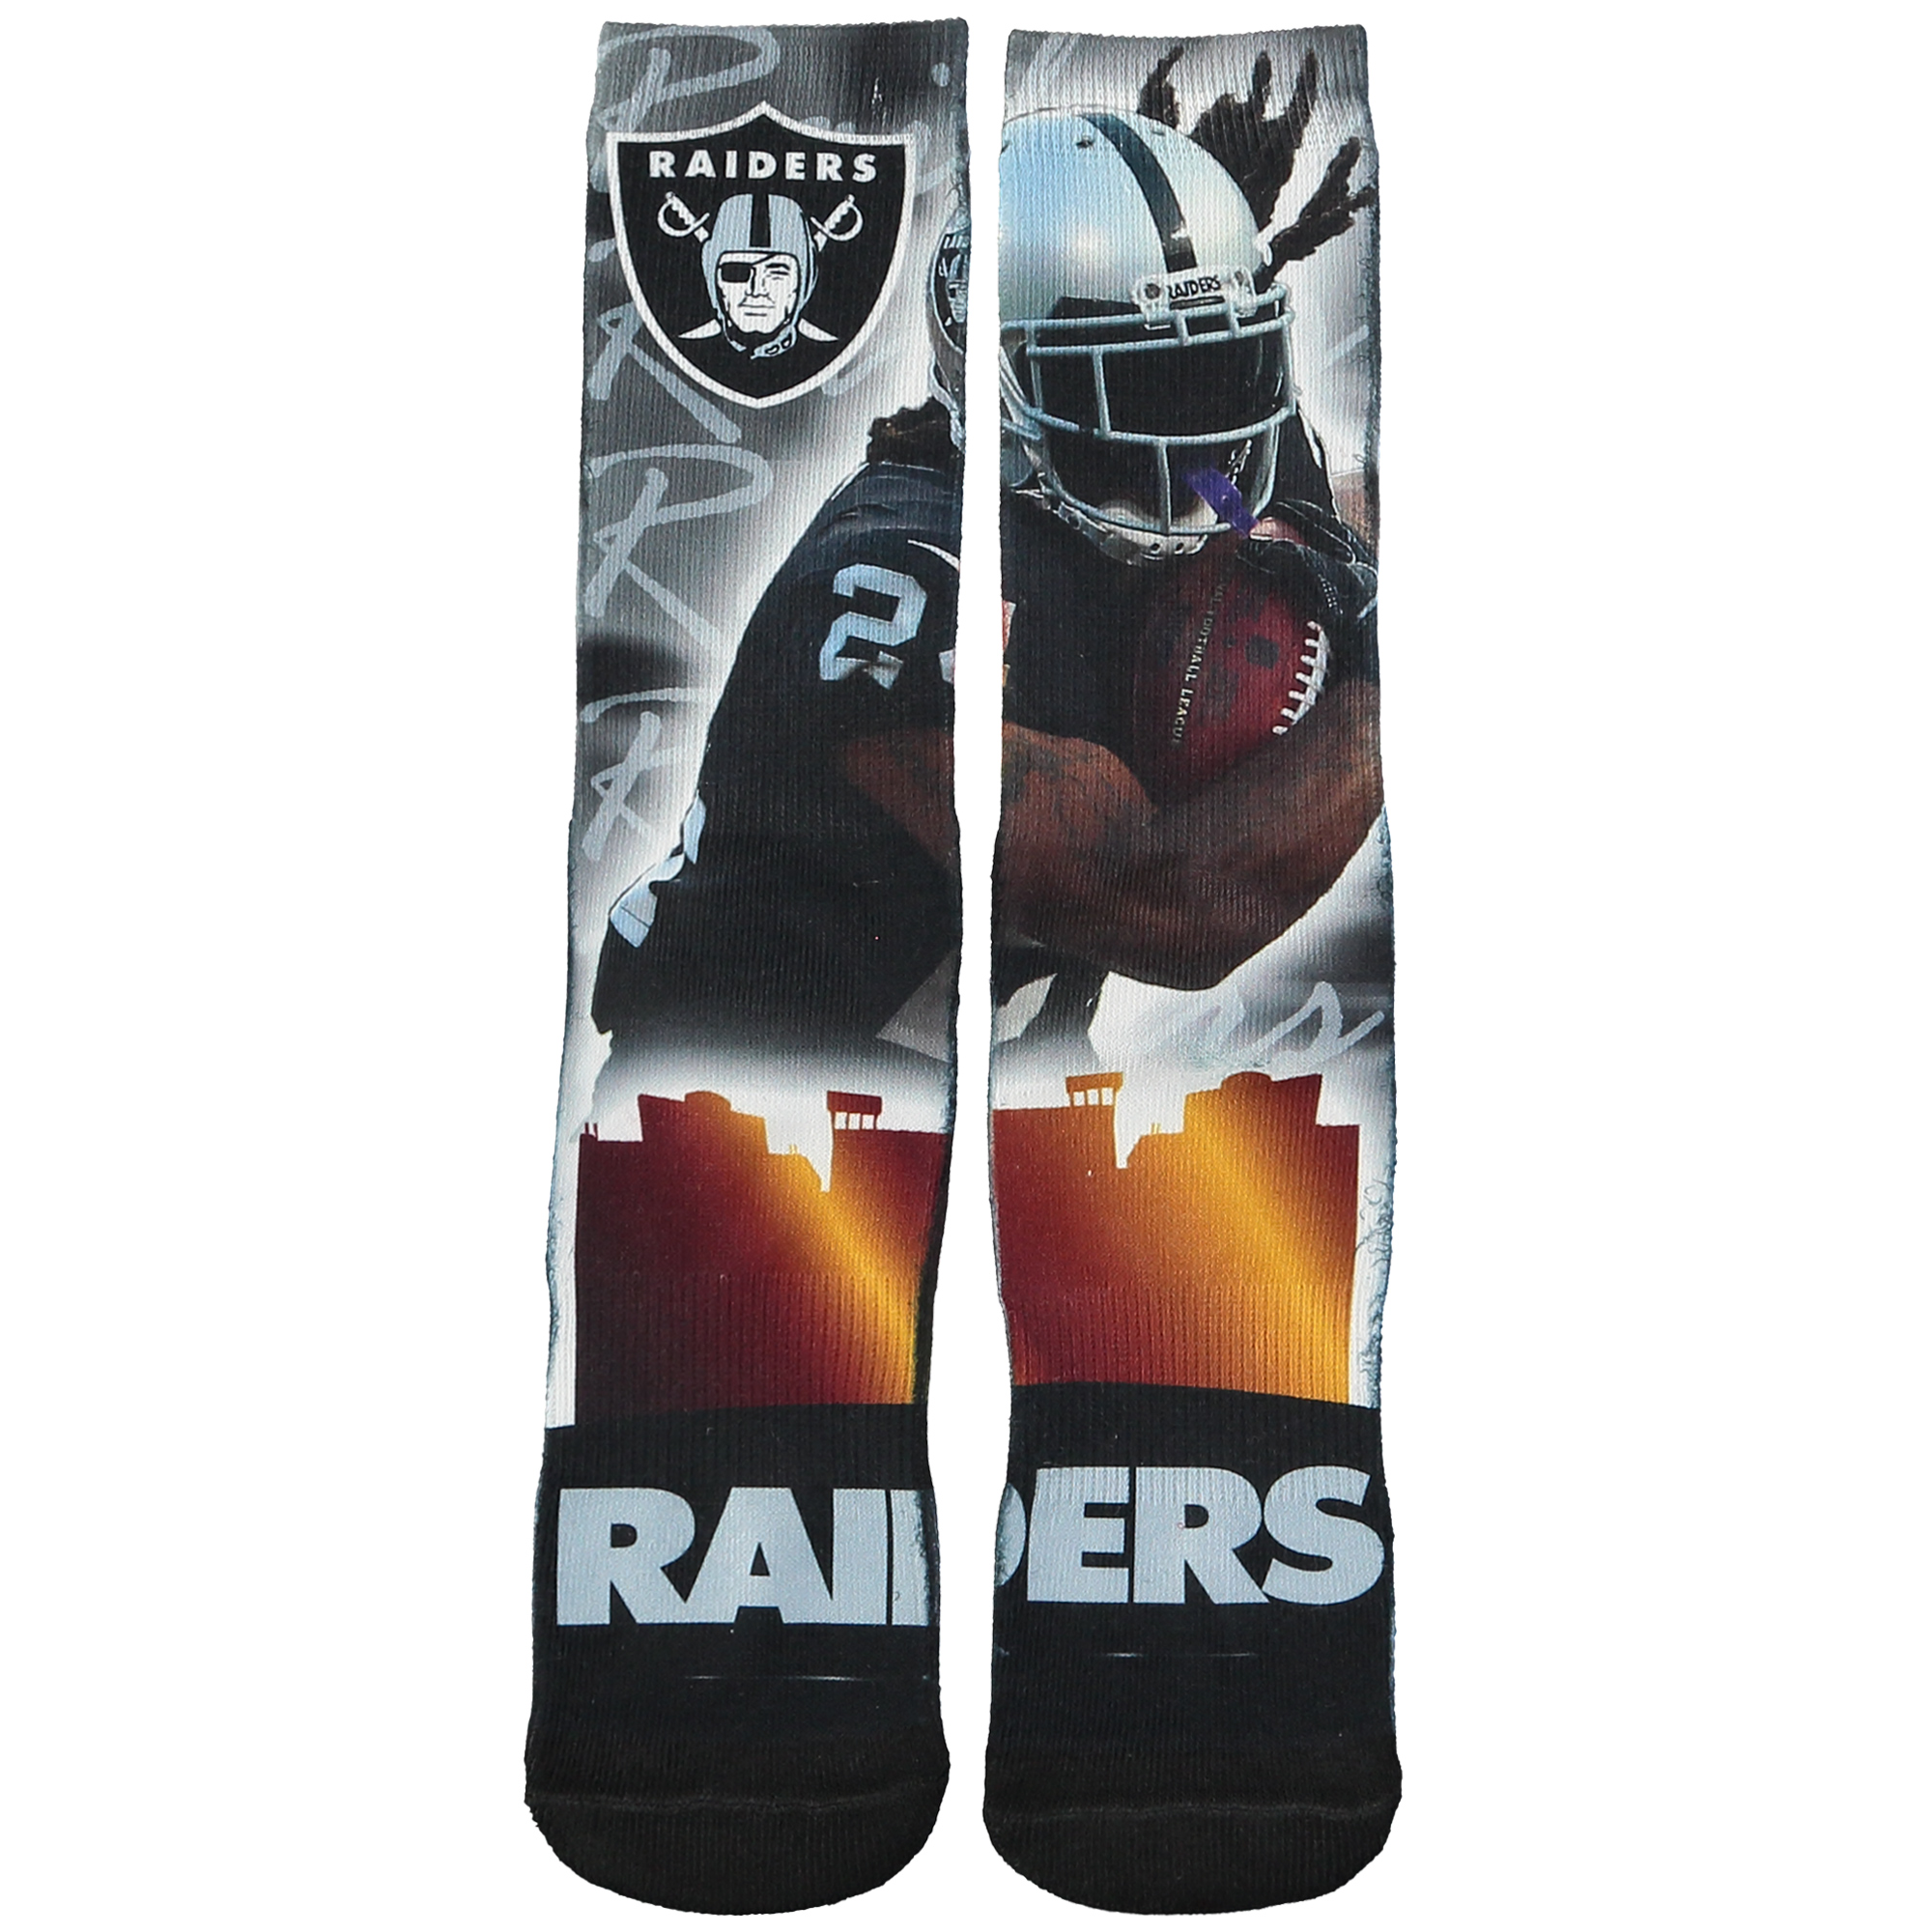 Marshawn Lynch Oakland Raiders For Bare Feet Women's City Star Player Socks - M